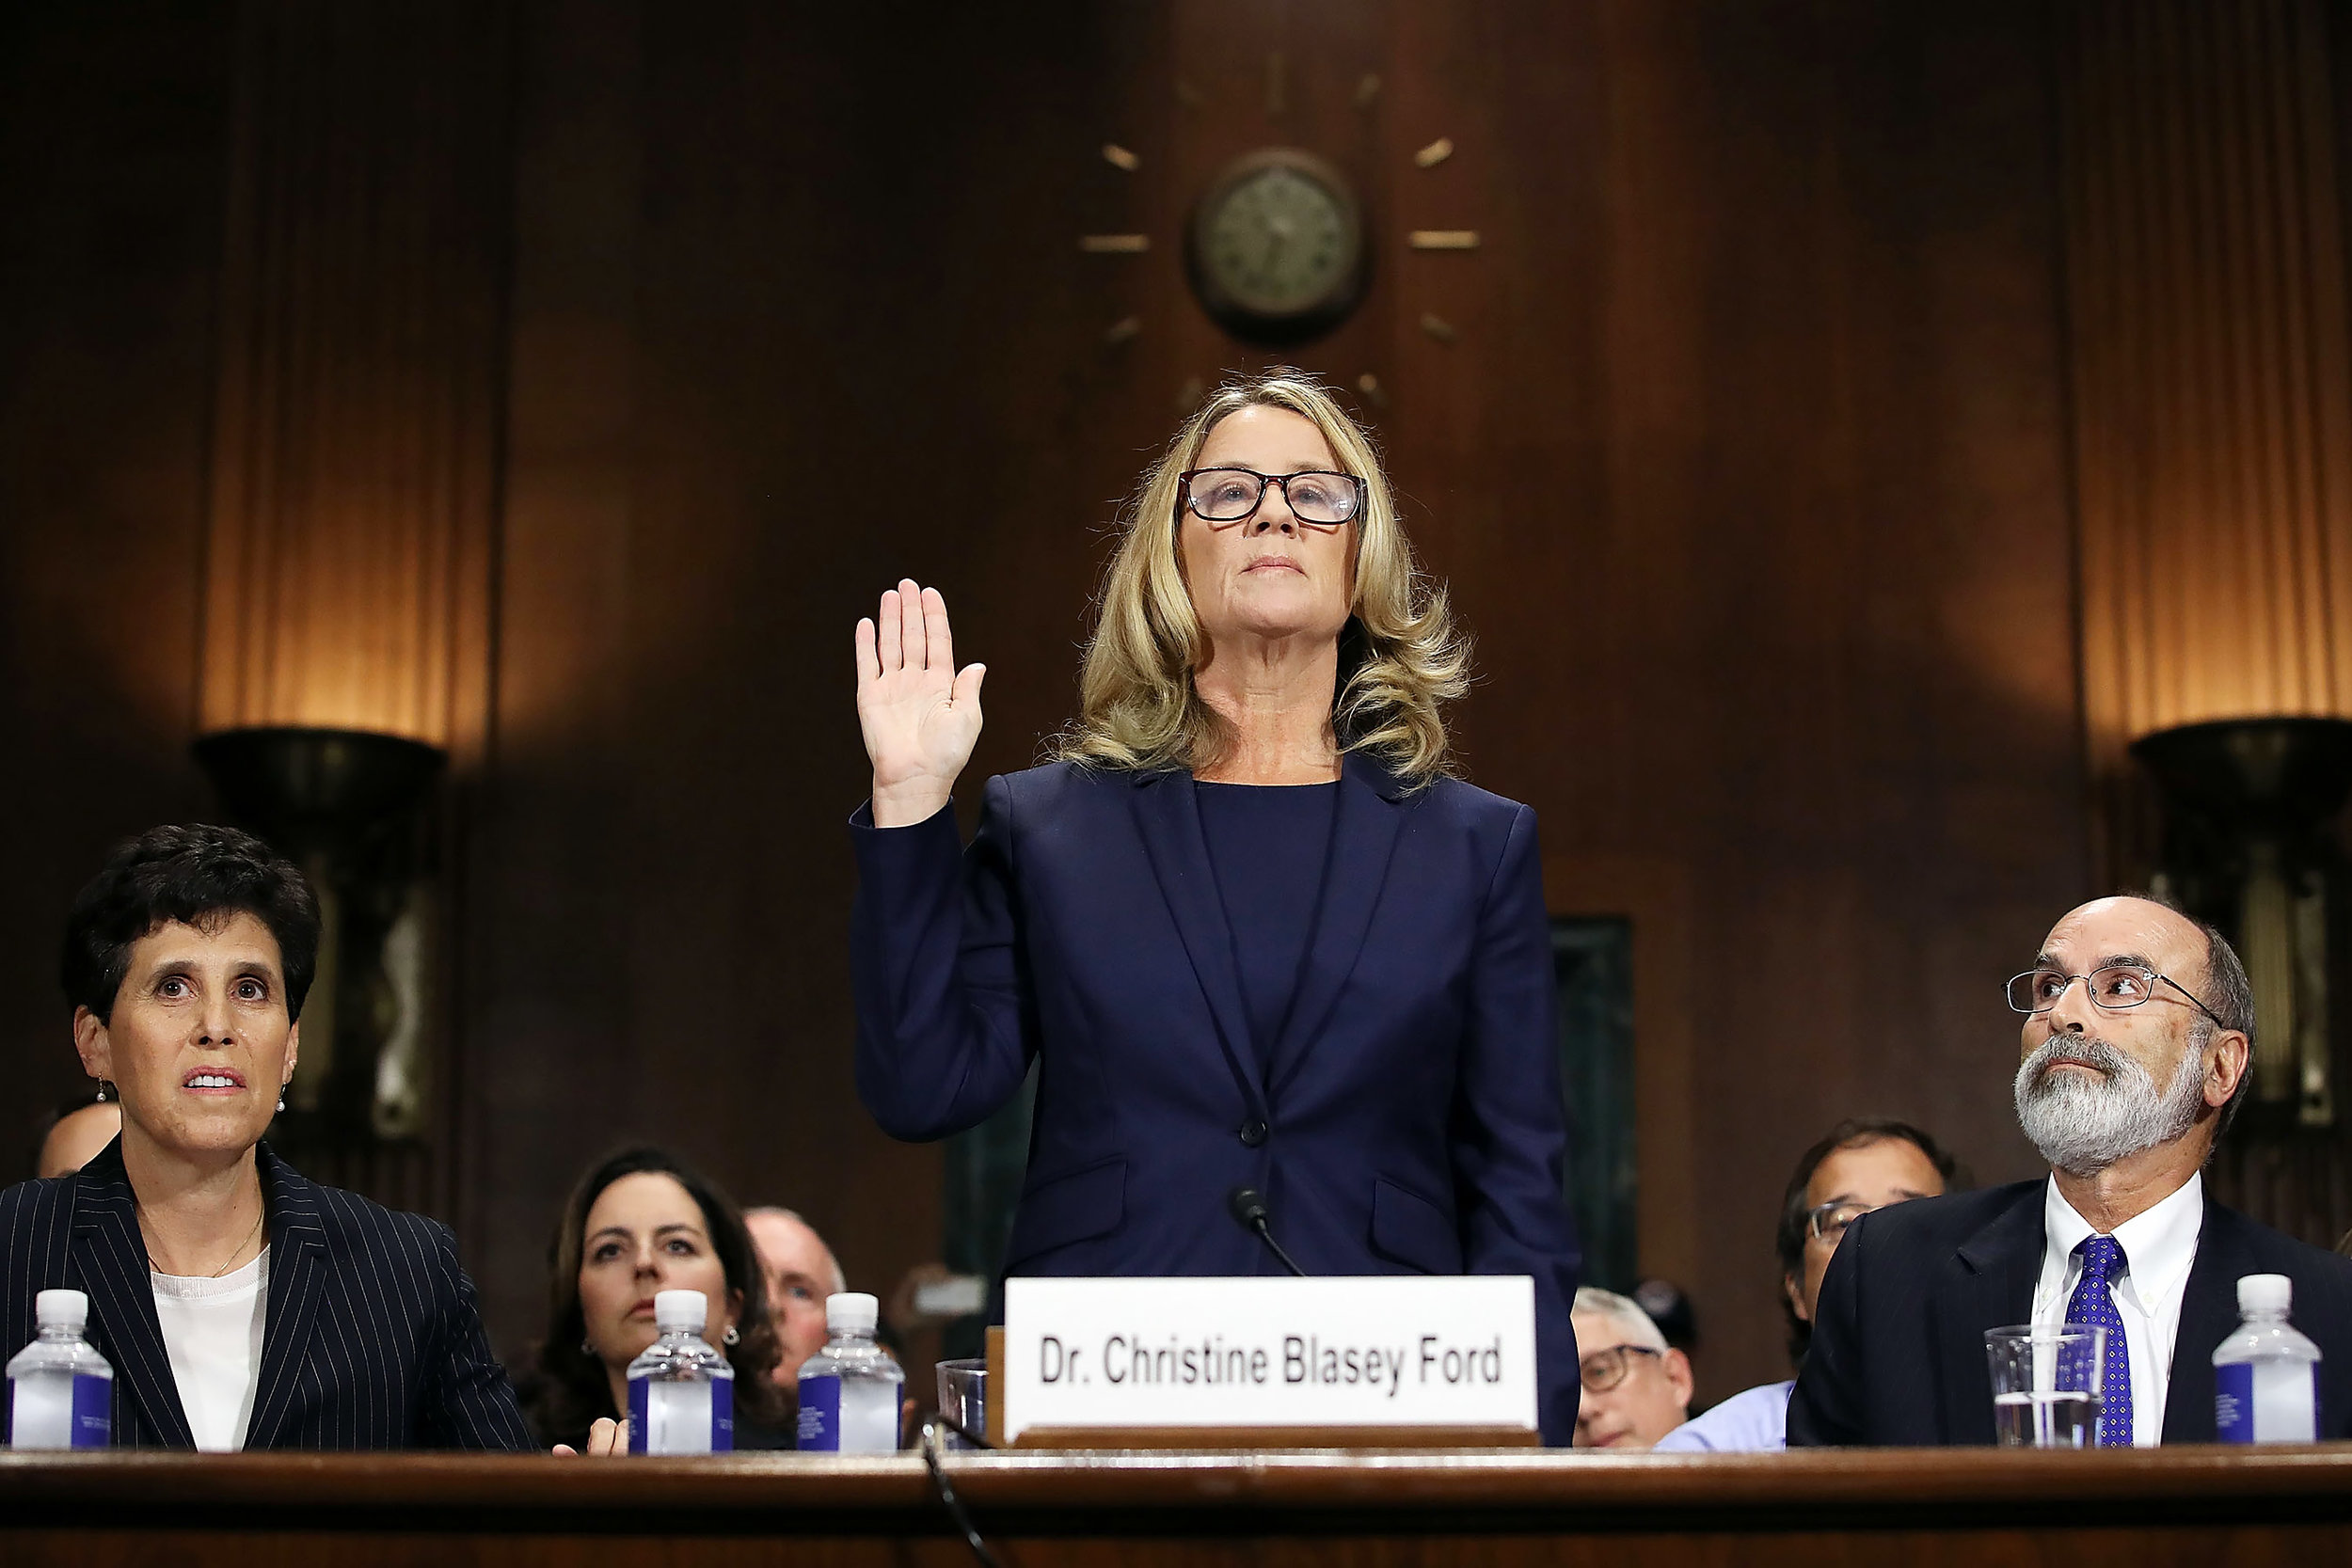 #MeToo meets me first: Christine Blasey Ford testifies against Brett Kavanaugh before the Senate Judiciary Committee.